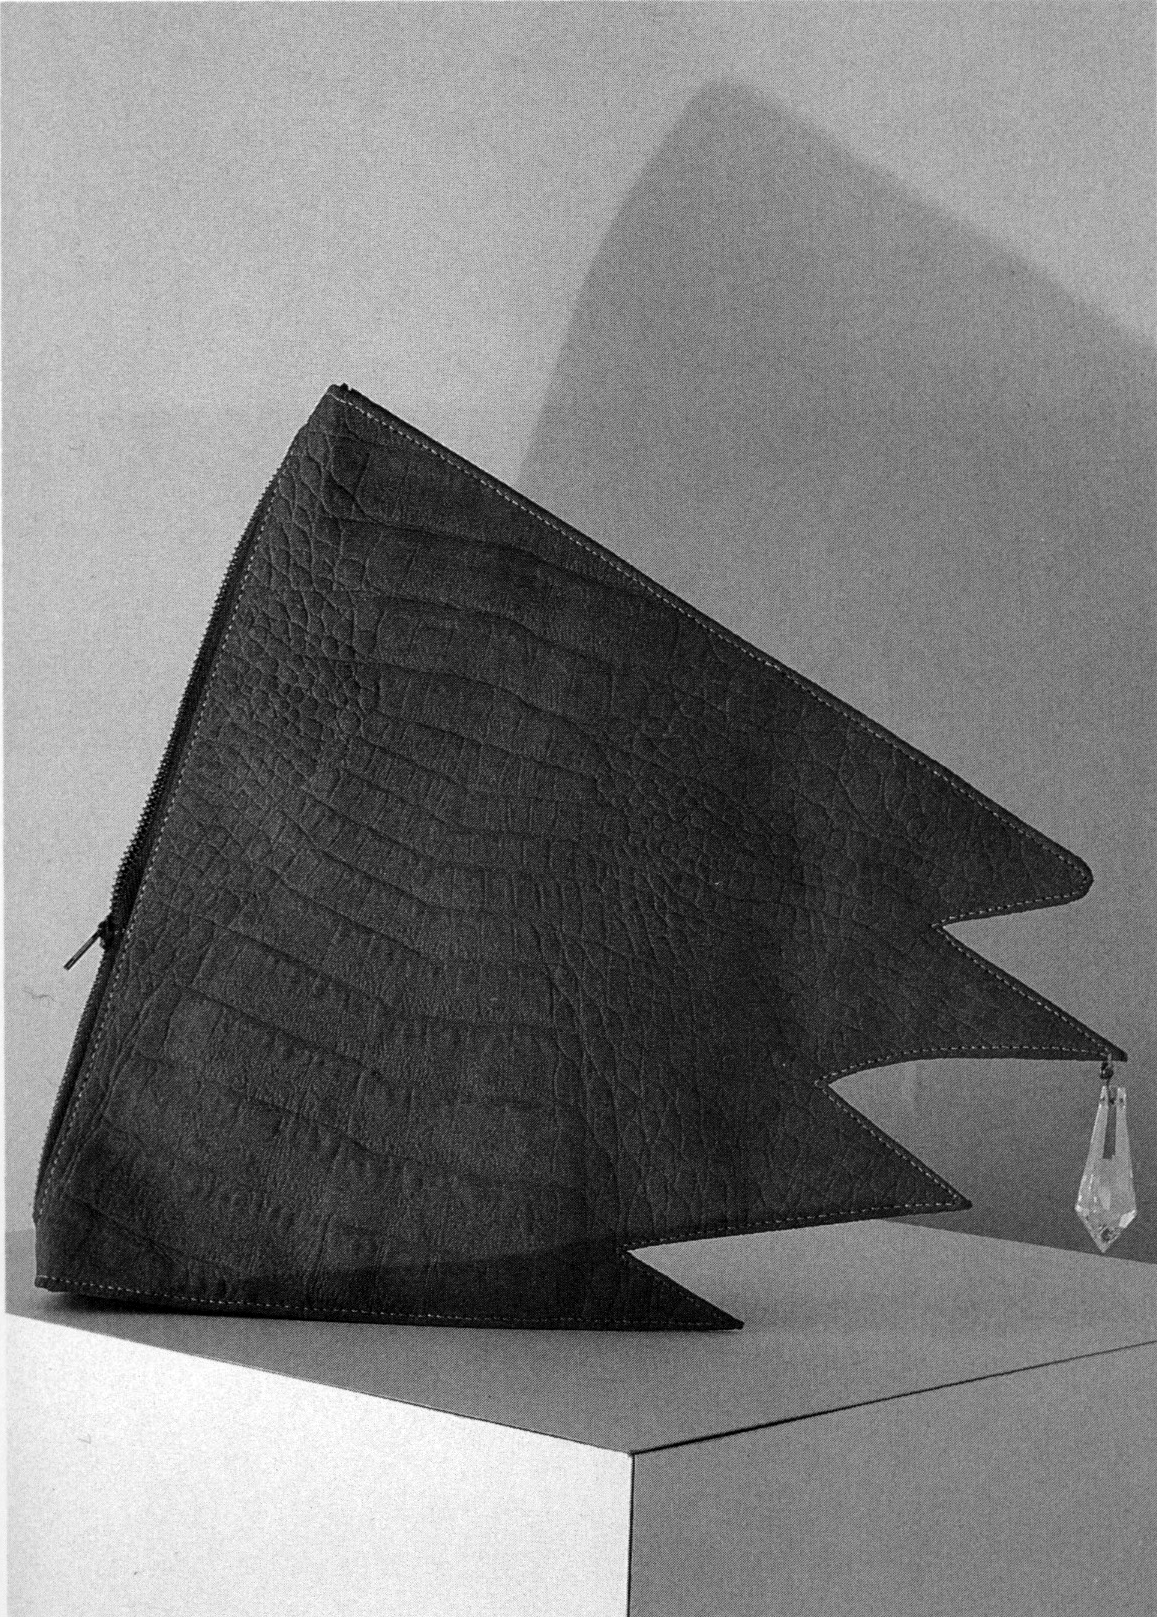 Architectural Fashion: Clutch